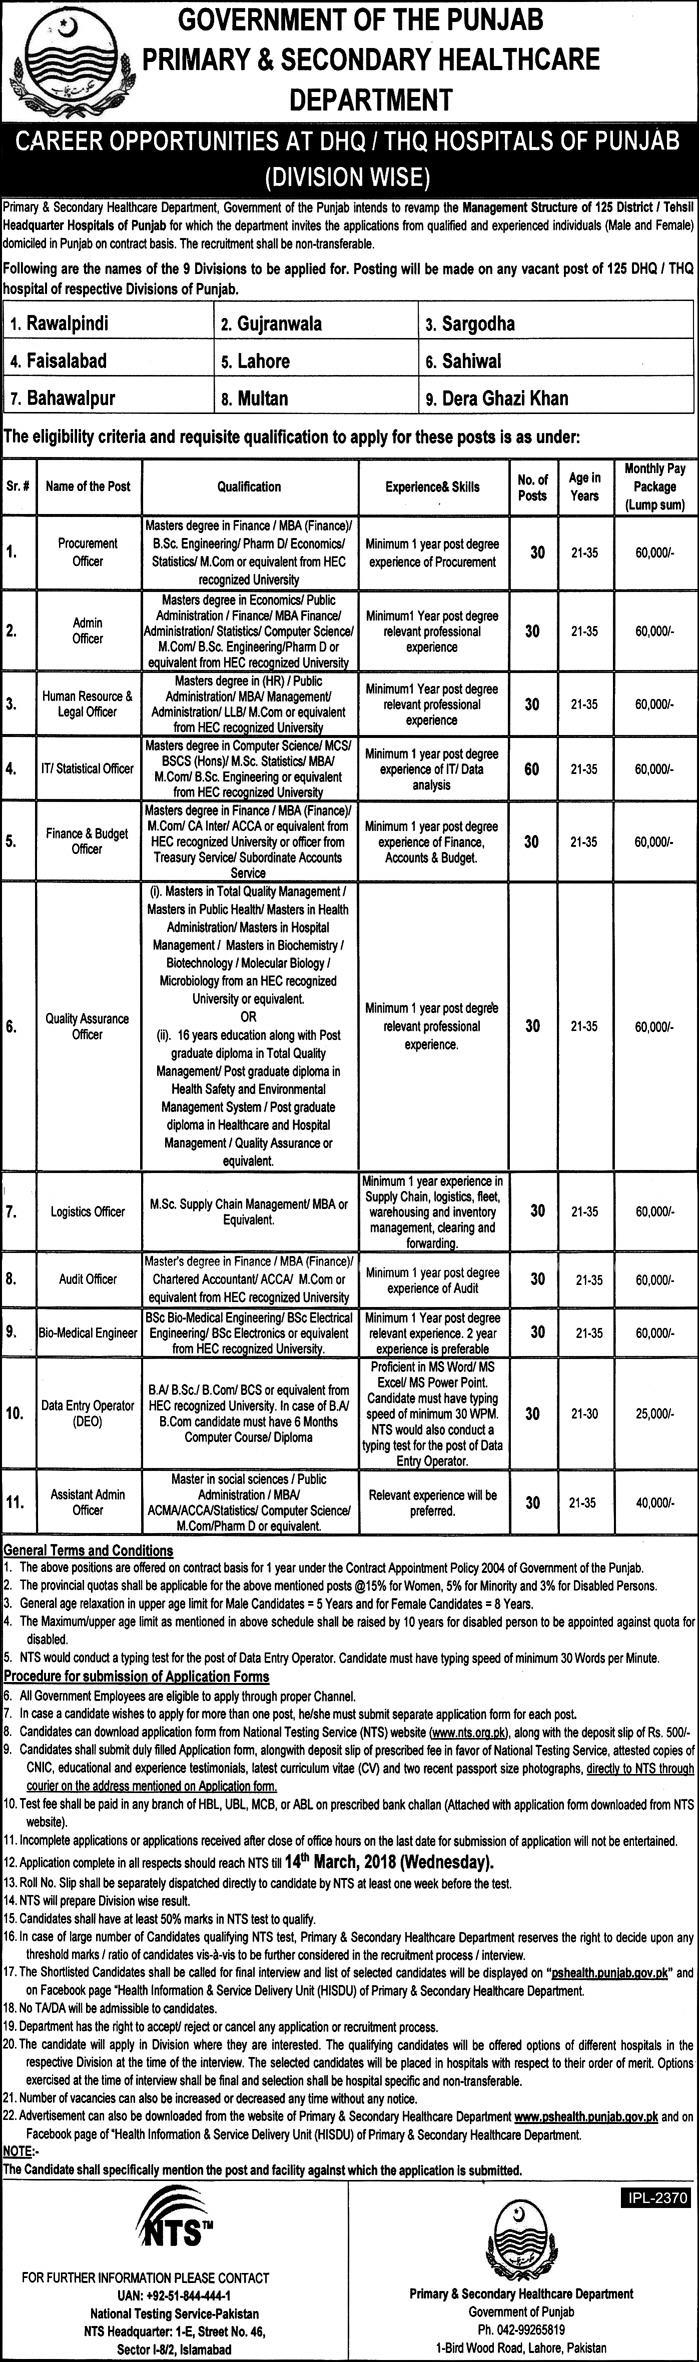 Department of Primary & Secondary Healthcare JObs